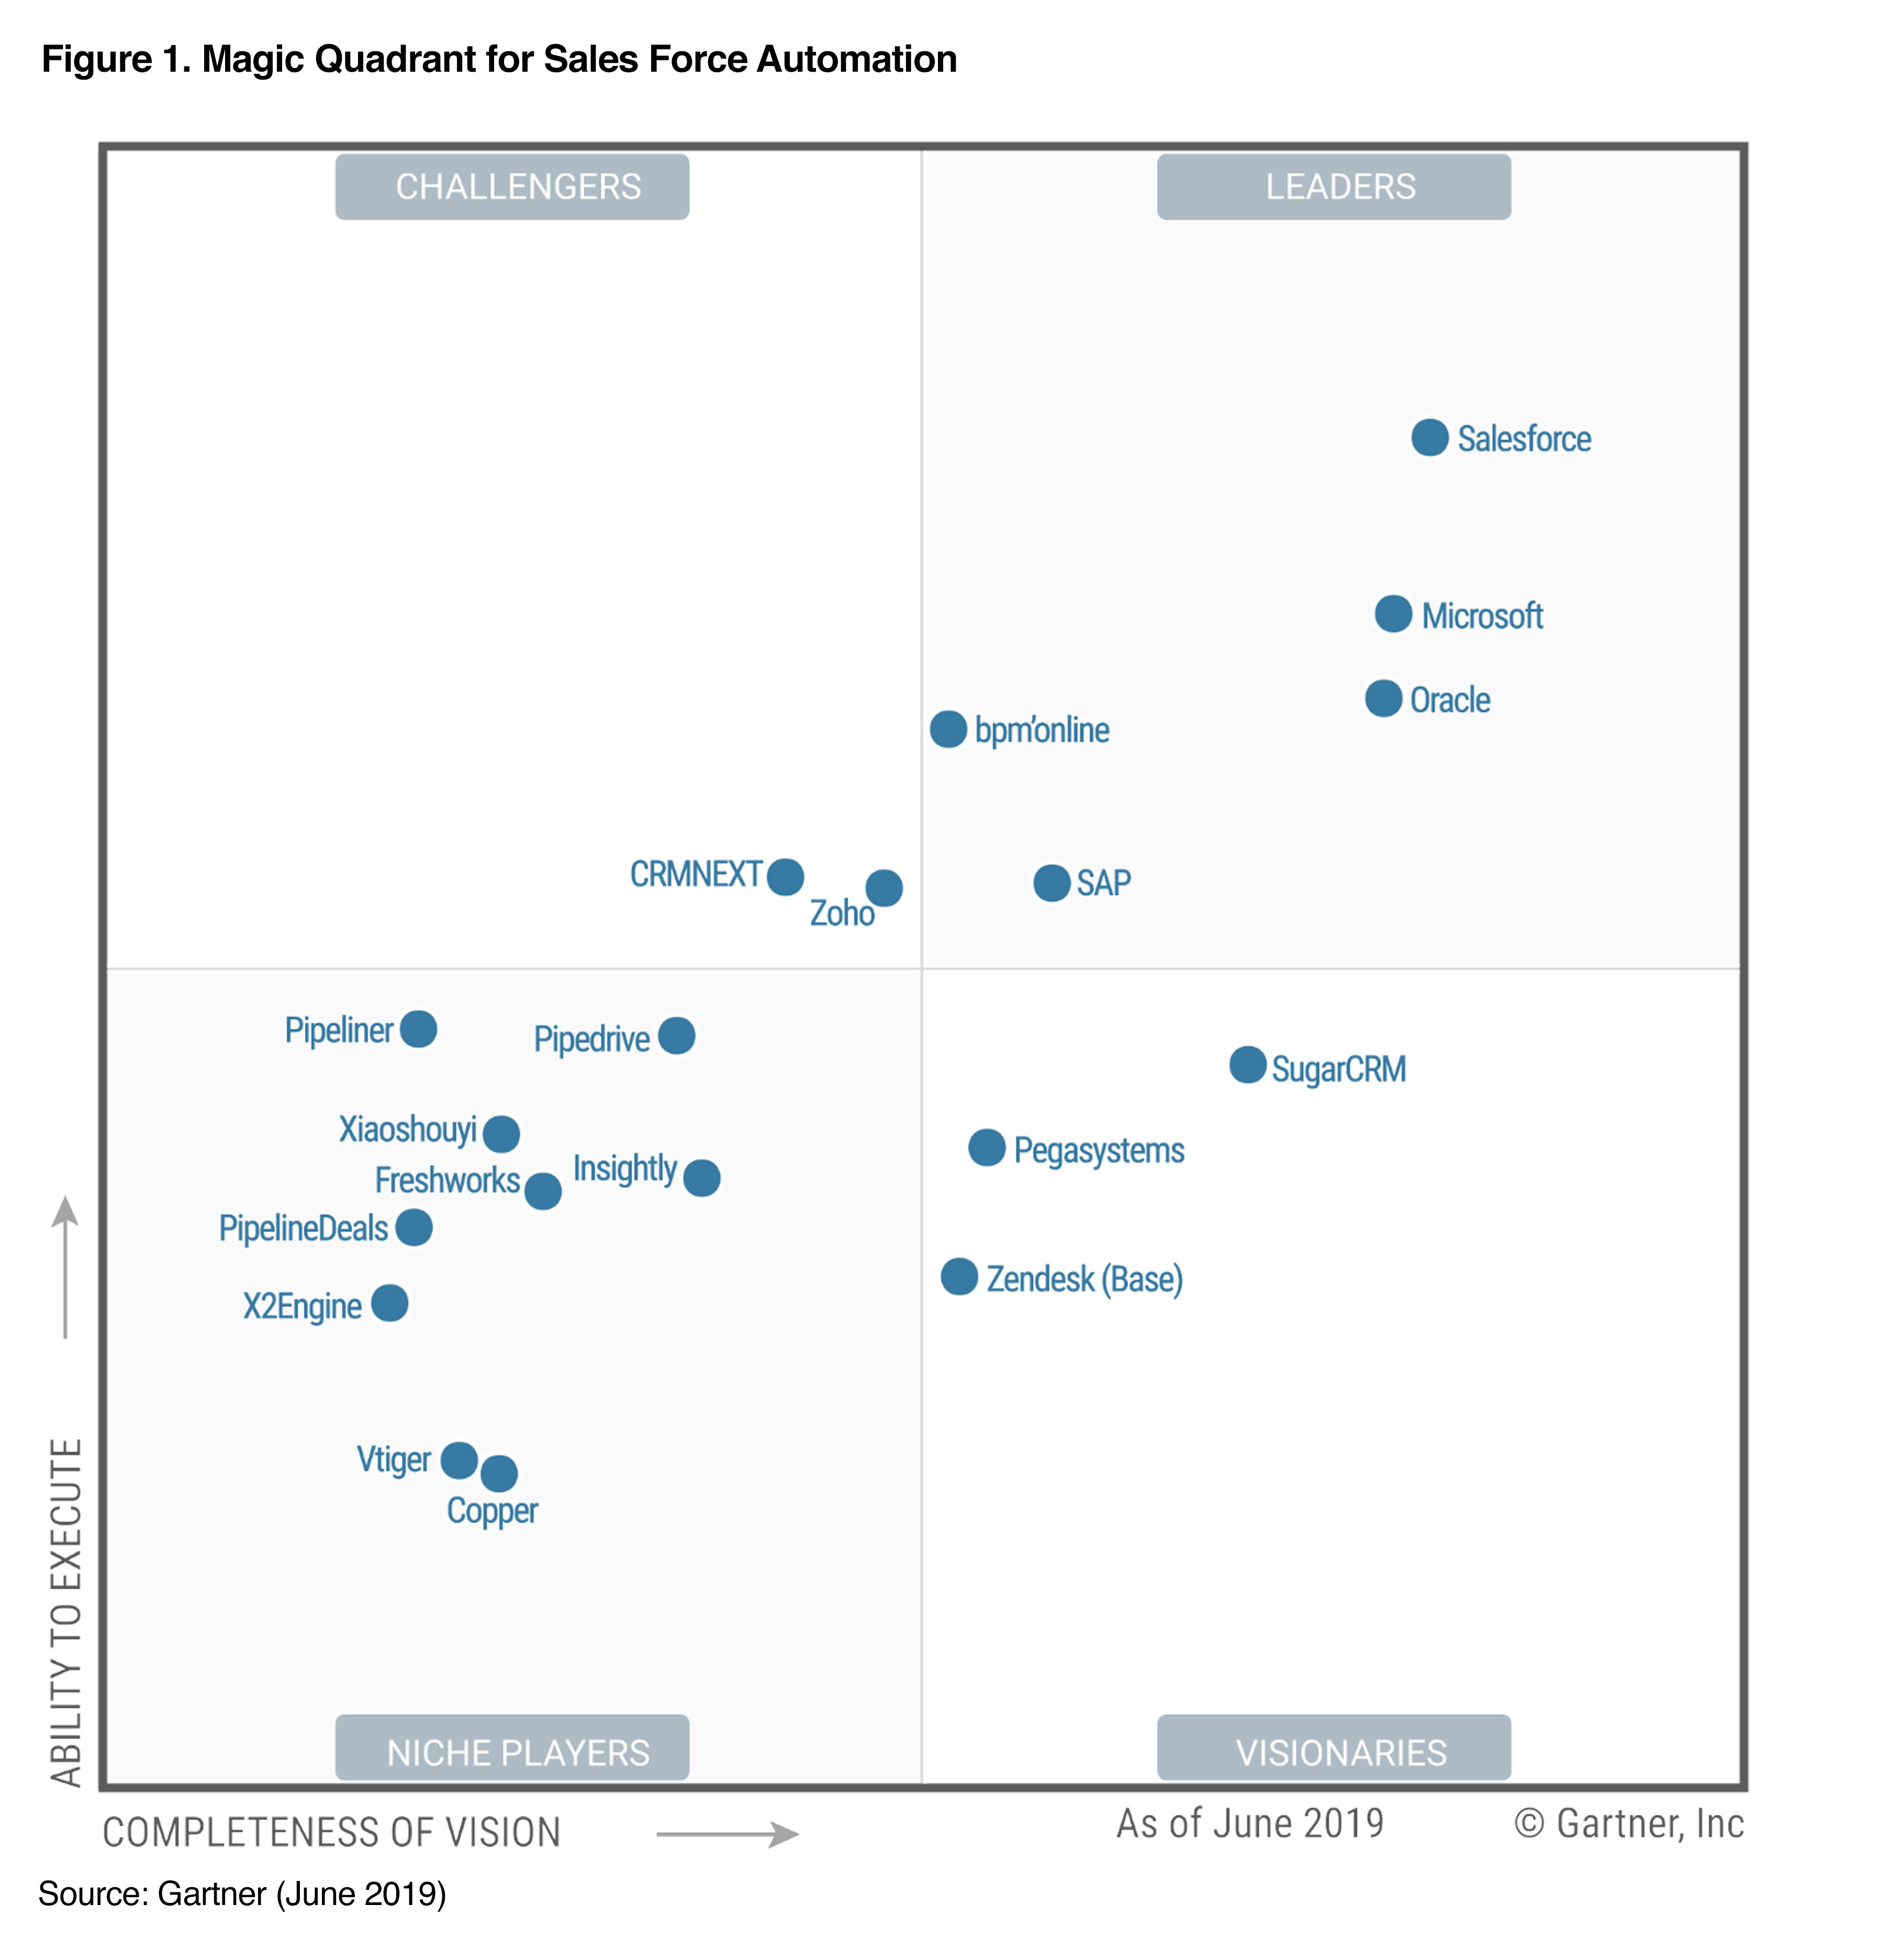 Gartner SFA Magic Quadrant Report - Pipeliner CRM